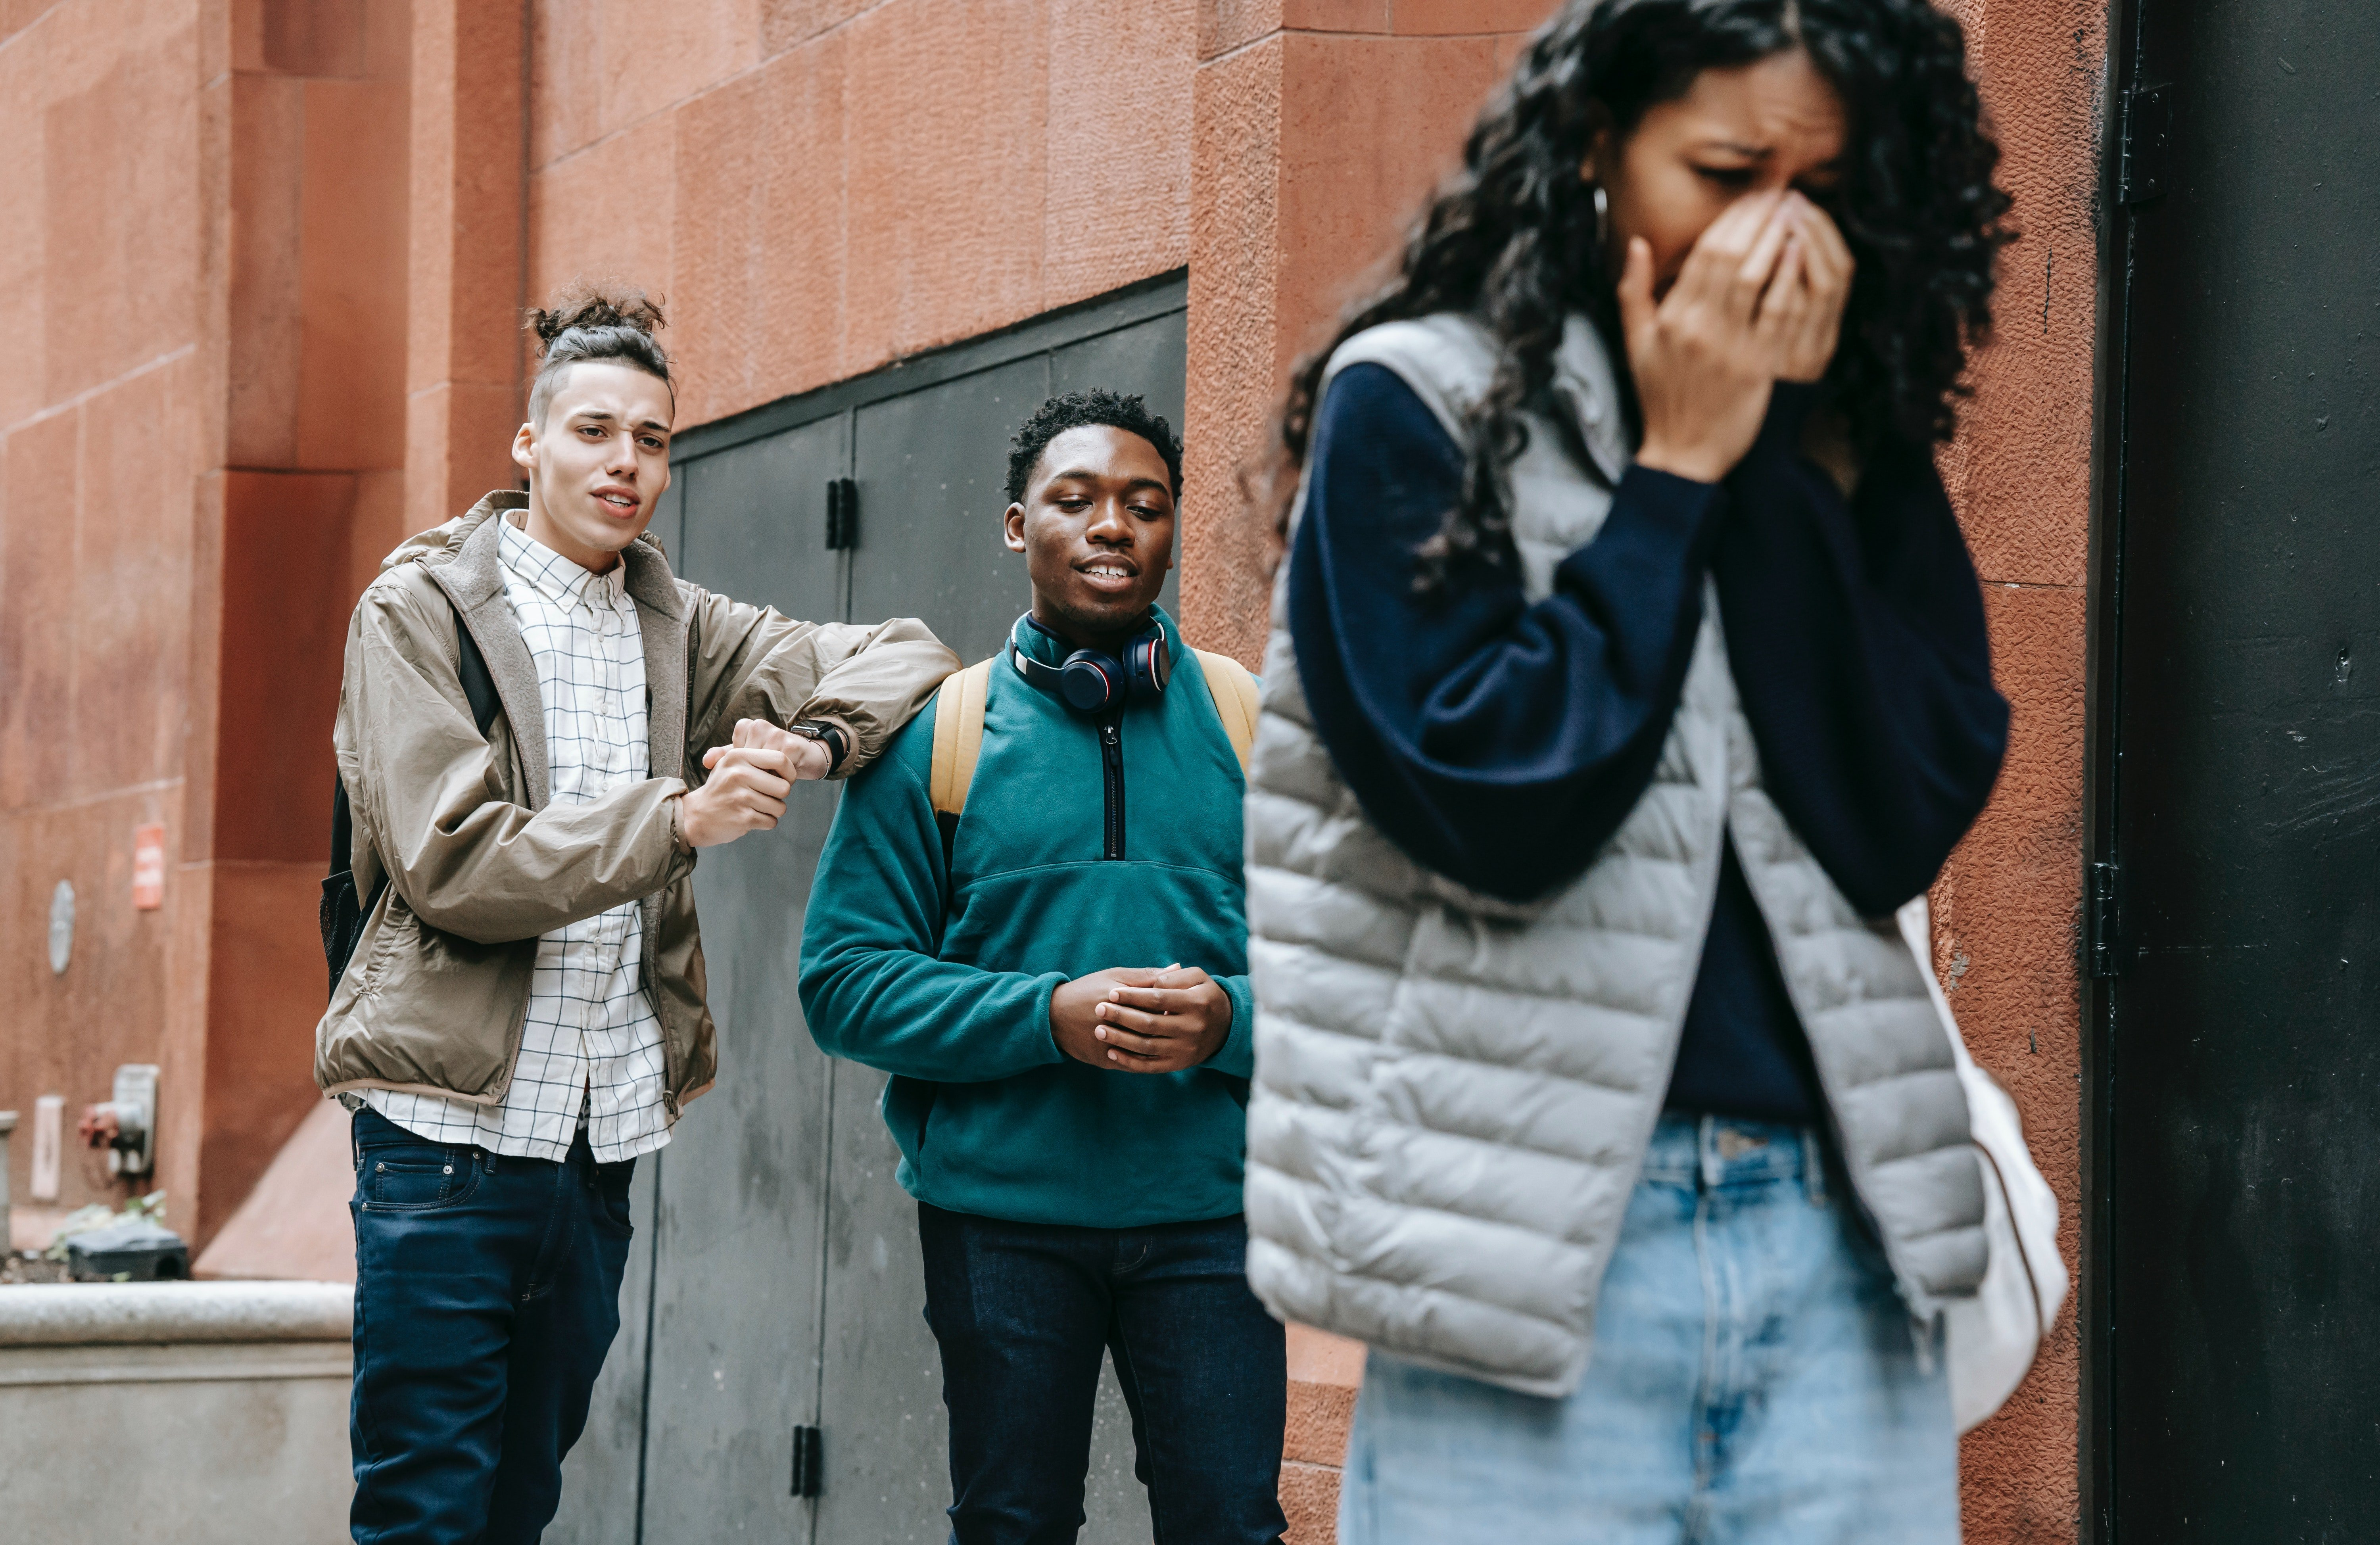 Young men bullying a crying lady   Photo: Pexels